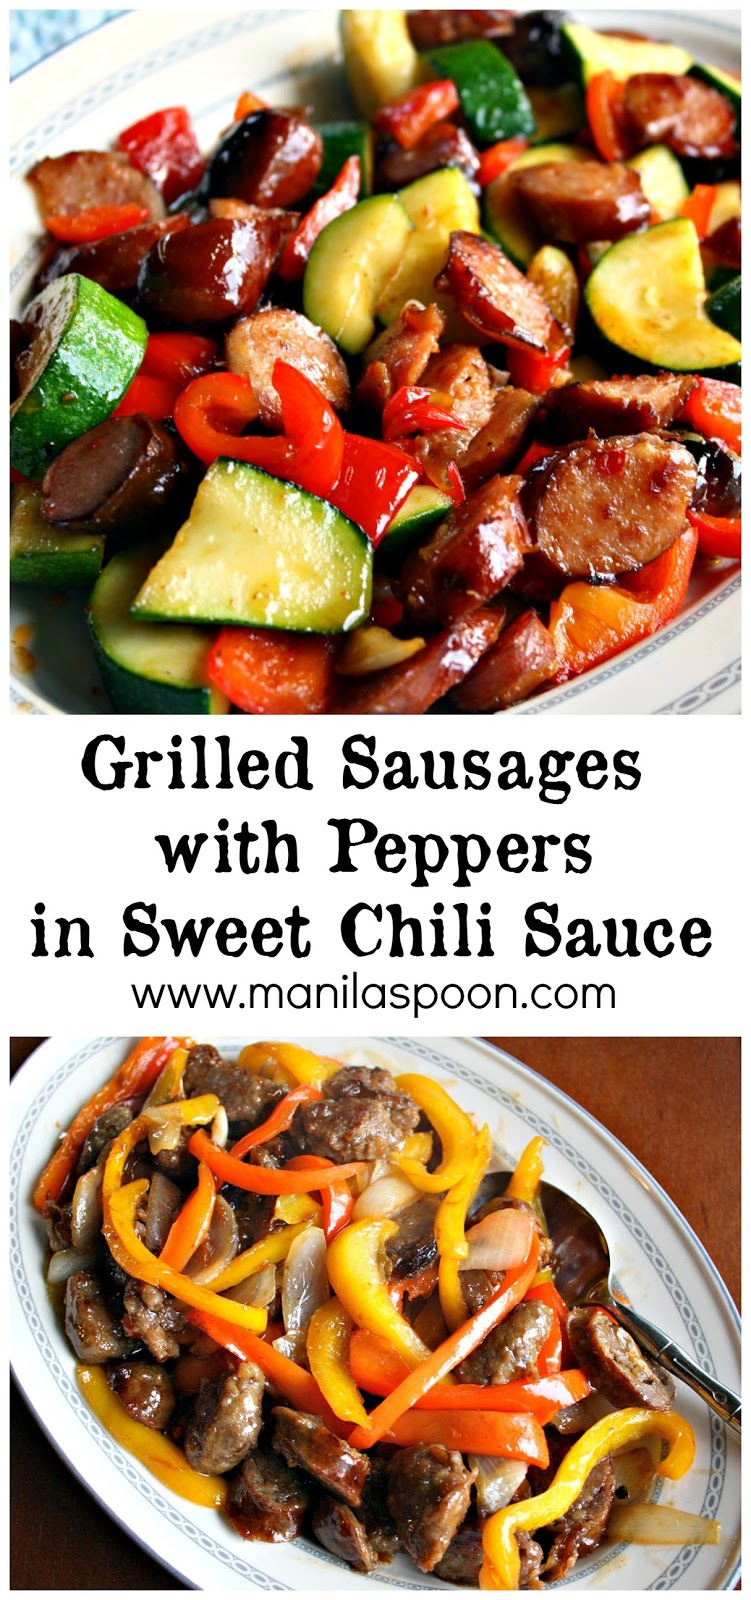 Just 10 MINUTES to make this quick, easy and delicious stir-fry! Perfect for using those left-over grilled sausages or hot dogs and with zucchinis and sweet peppers added it's a wholesome dish for everyone!!  #grilled #sausage #sweet #chili #sauce